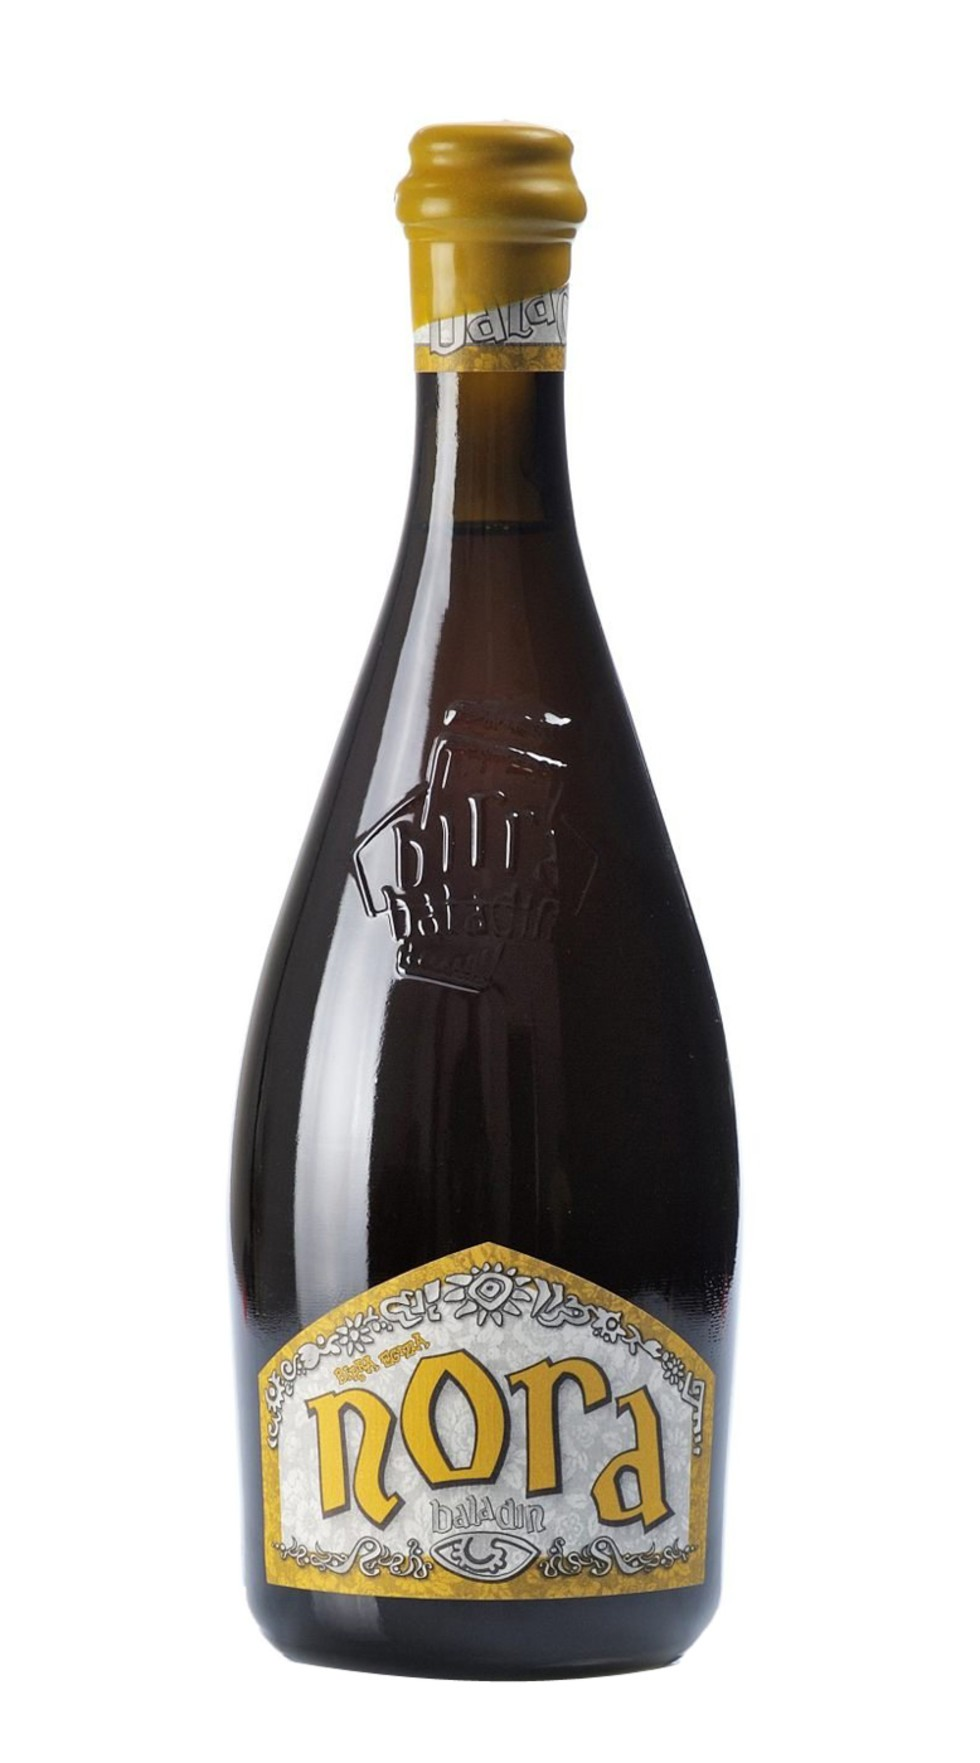 Baladin Nora Specialty Egyptian Ale 750ml